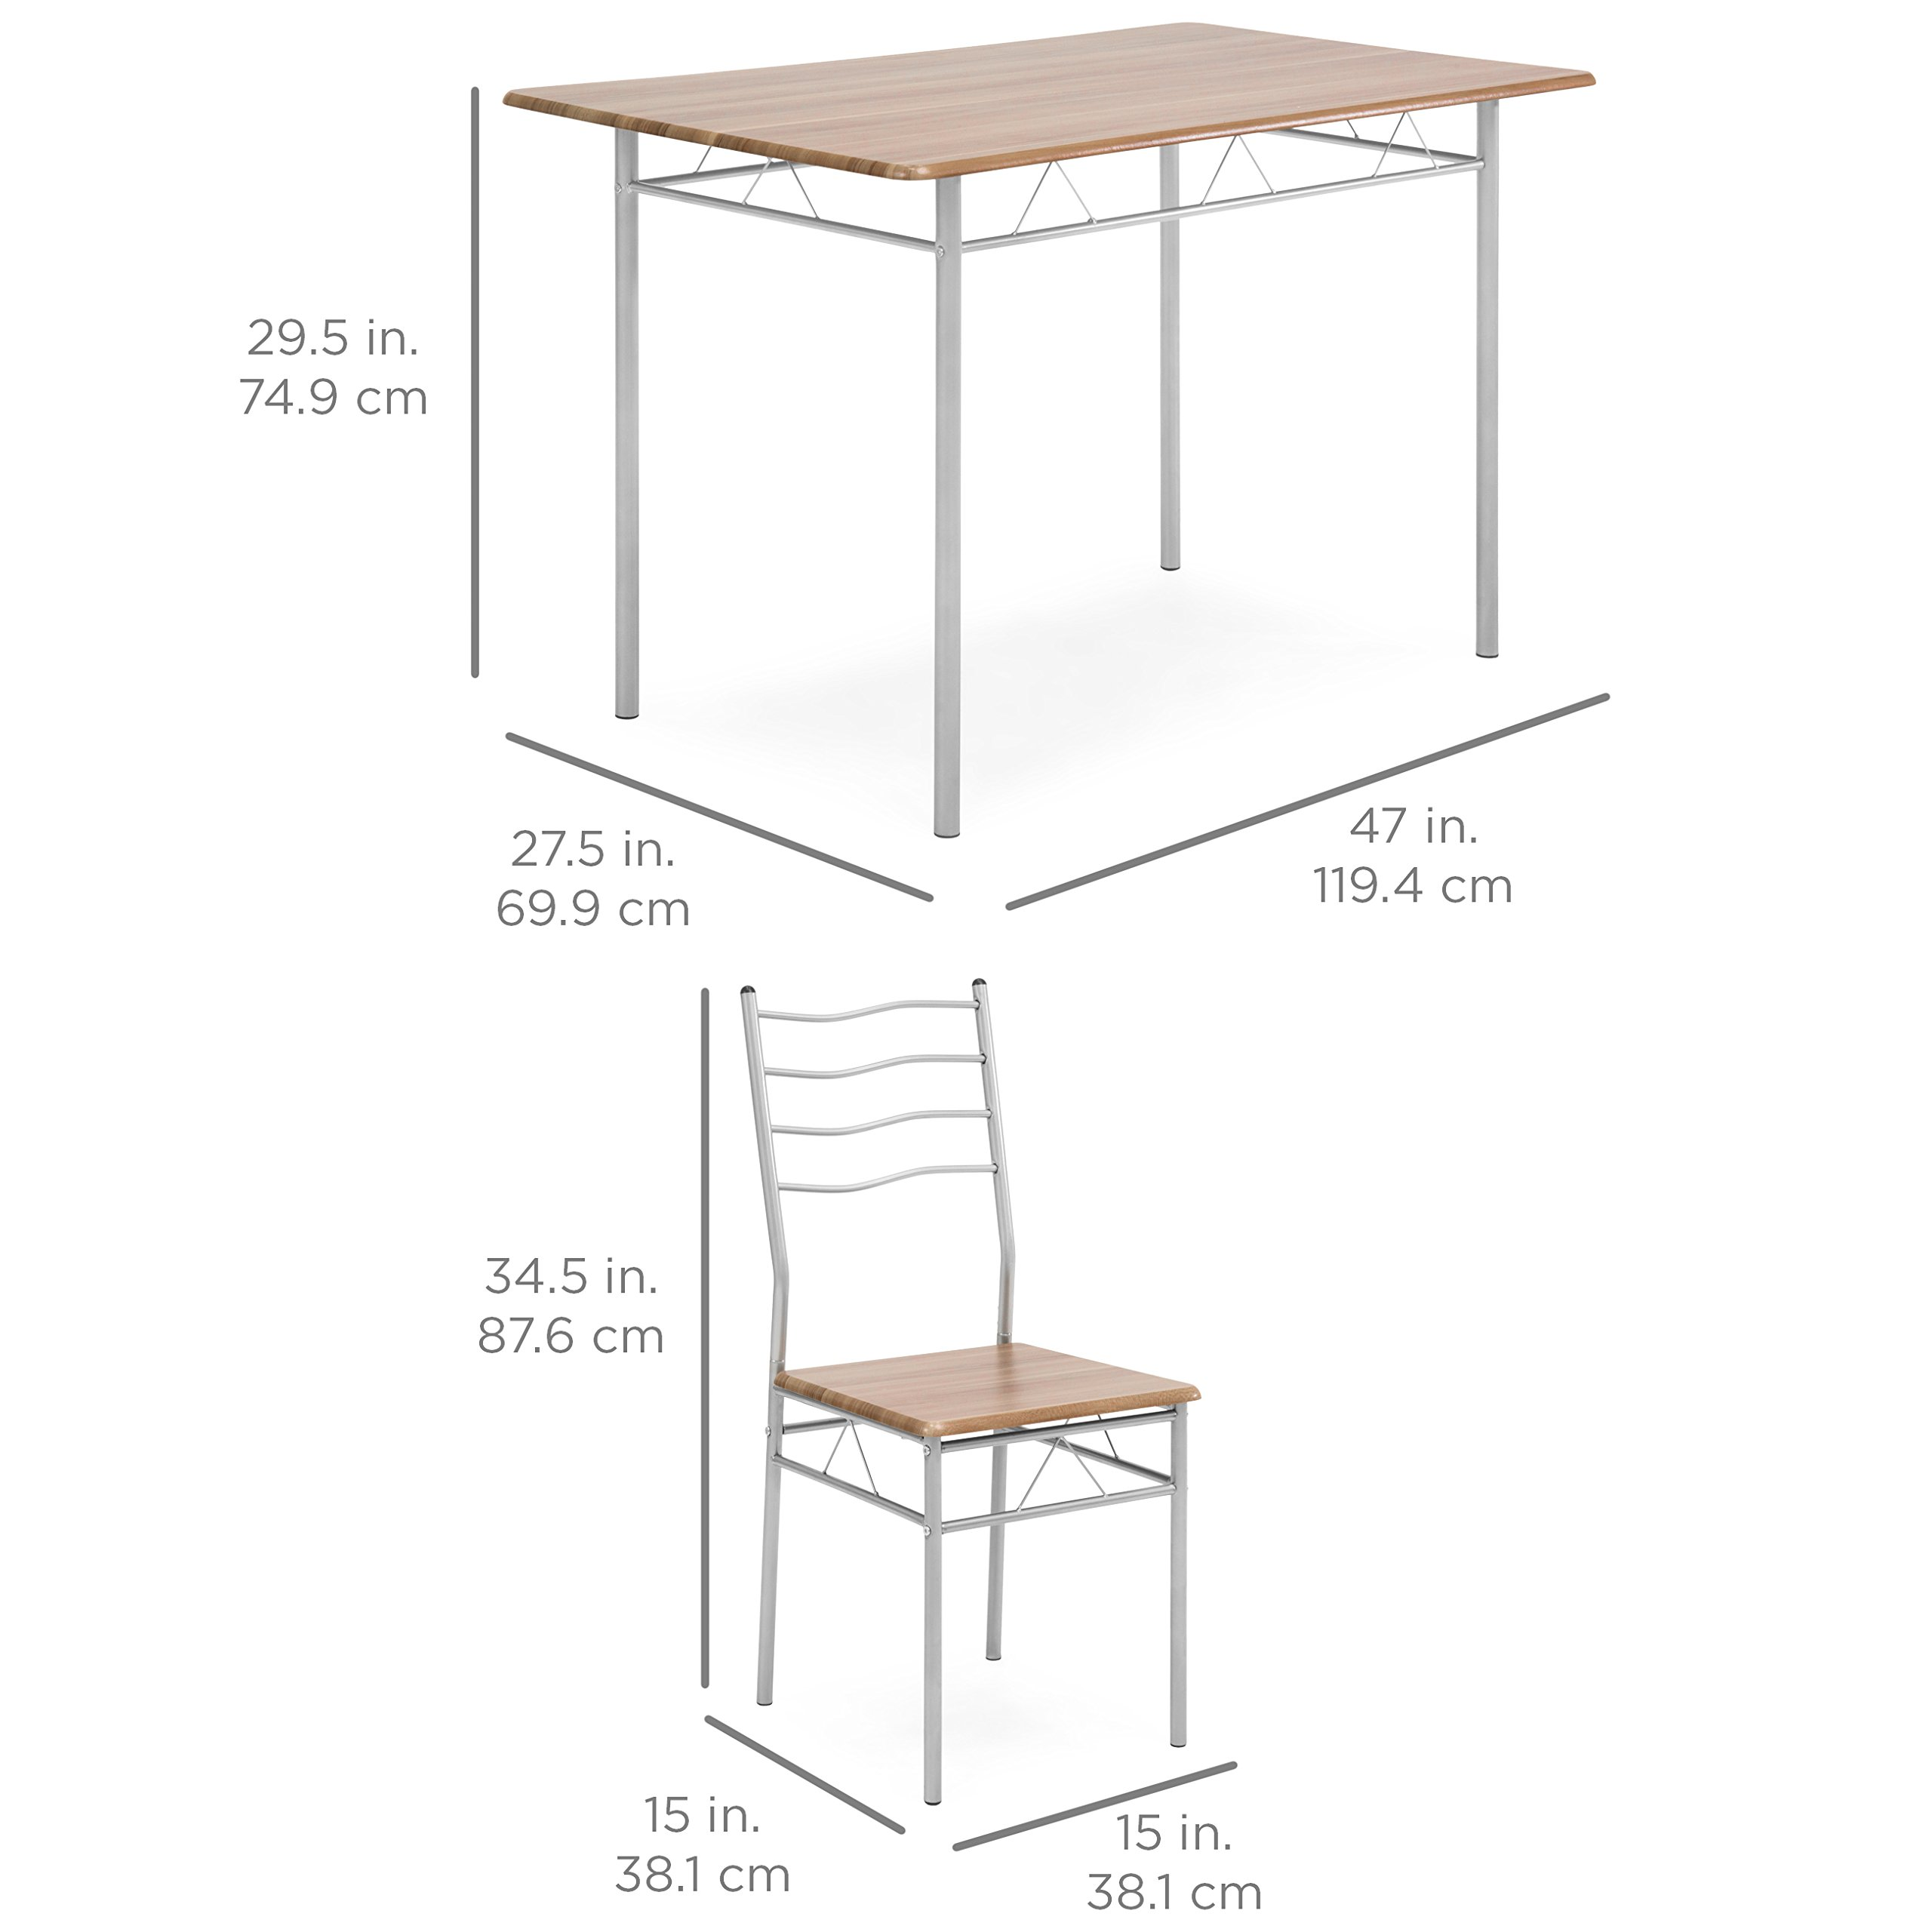 Best Choice Products 5-Piece 4-Foot Modern Wooden Kitchen Table Dining Set w/Metal Legs, 4 Chairs, Brown/Silver by Best Choice Products (Image #6)